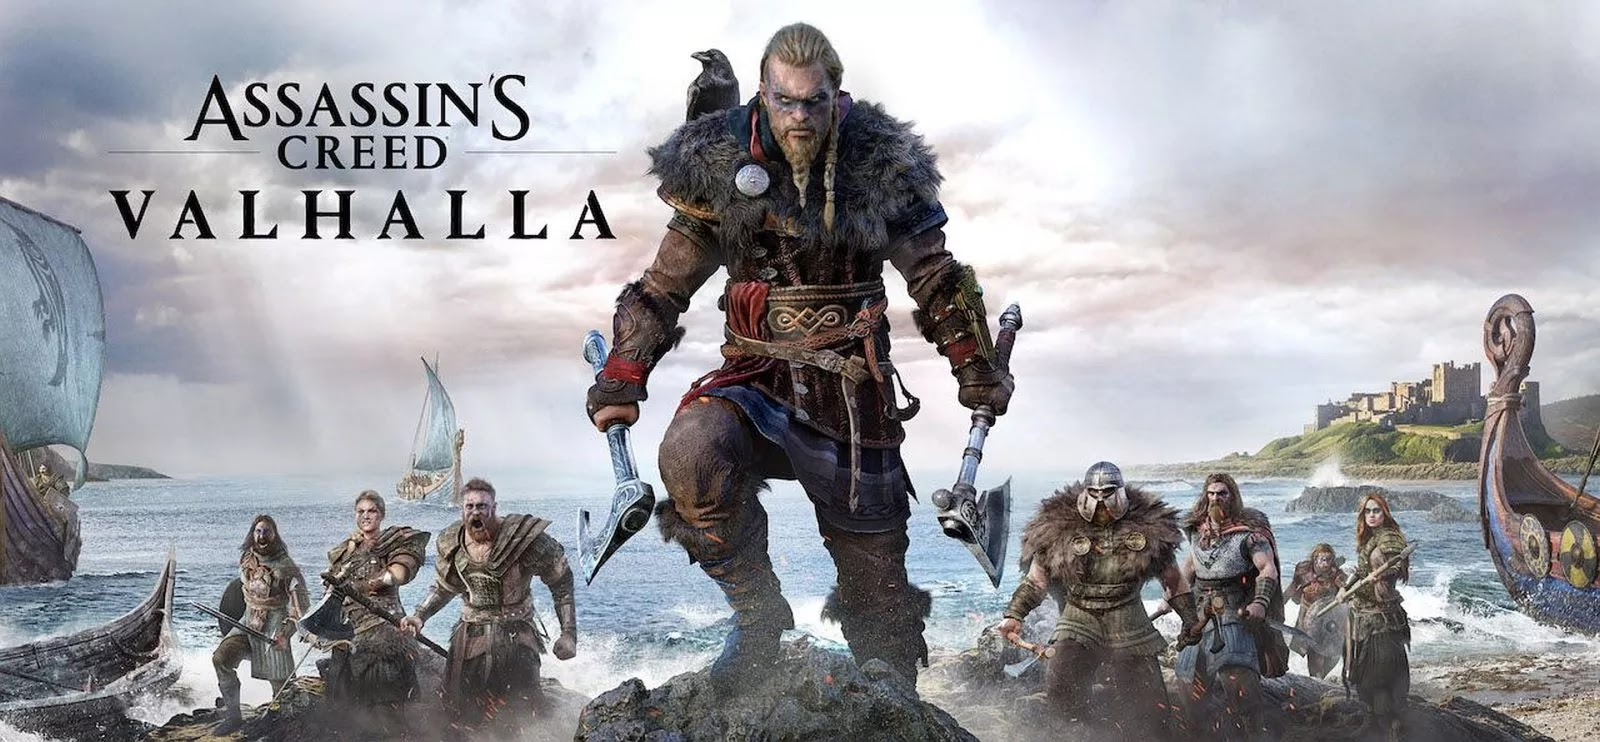 Assassin's Creed Valhalla review One of the highlights it tries to offer is freedom in everything